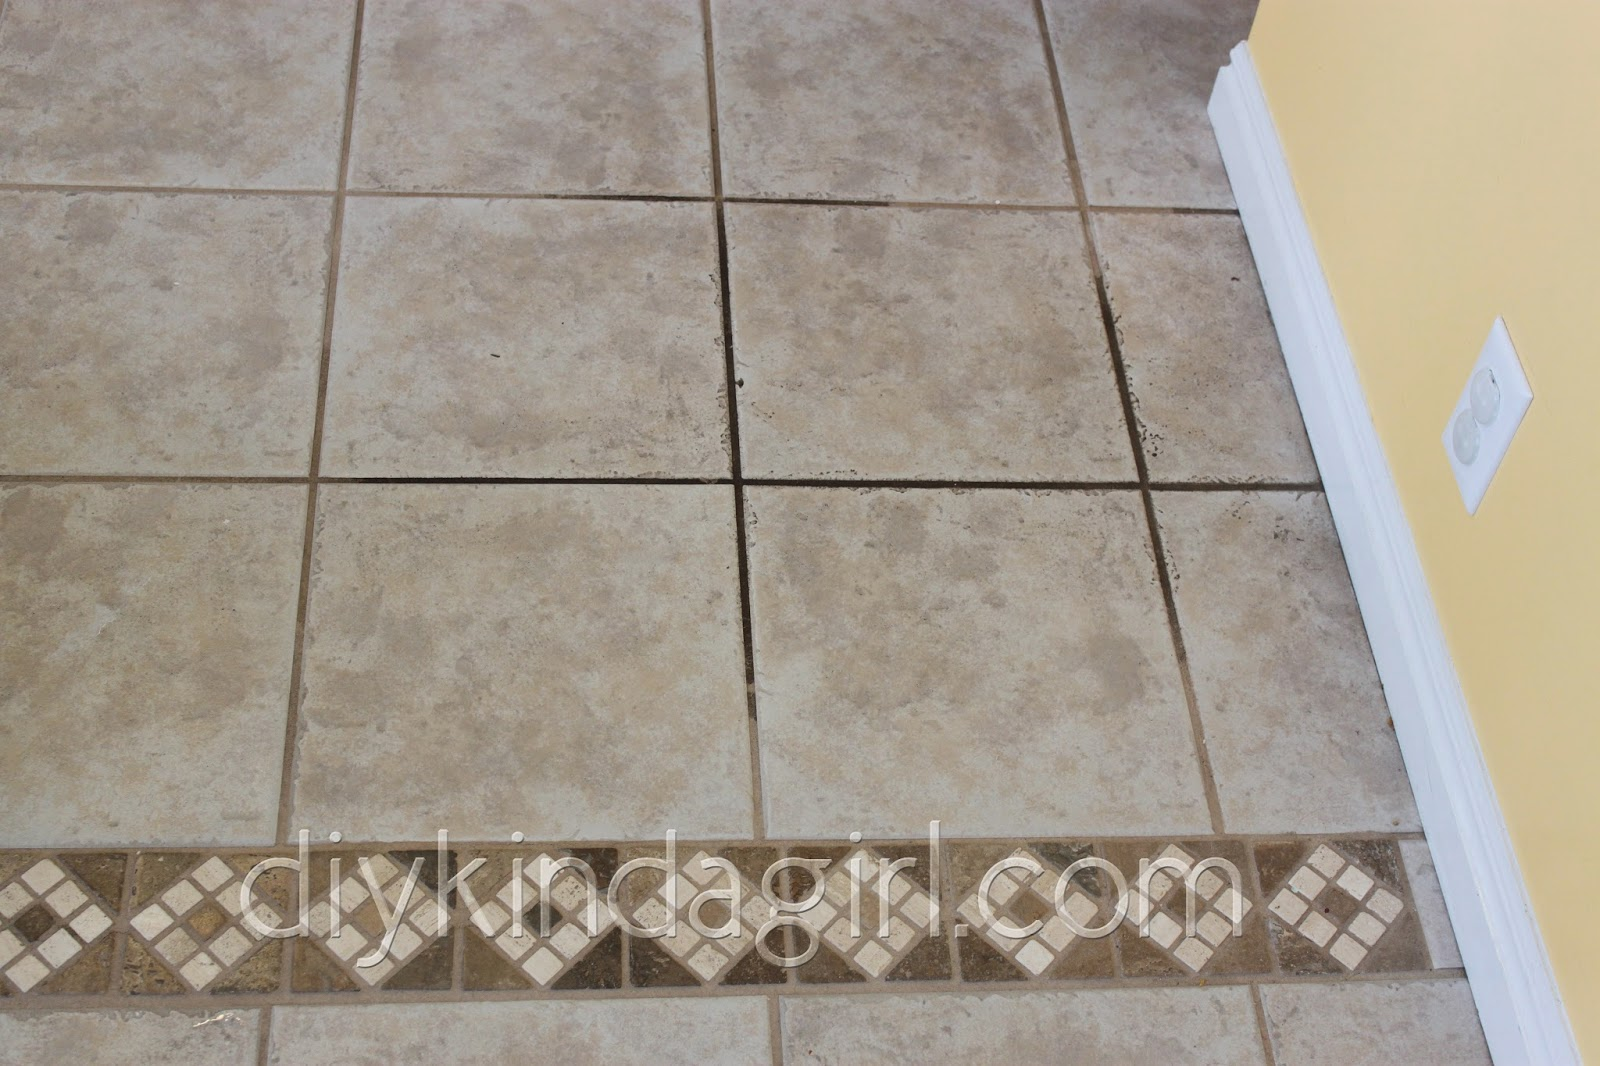 How to clean floor tile grout with oxiclean diy kinda girl diy household tip cleaning grout oxiclean vs dailygadgetfo Images